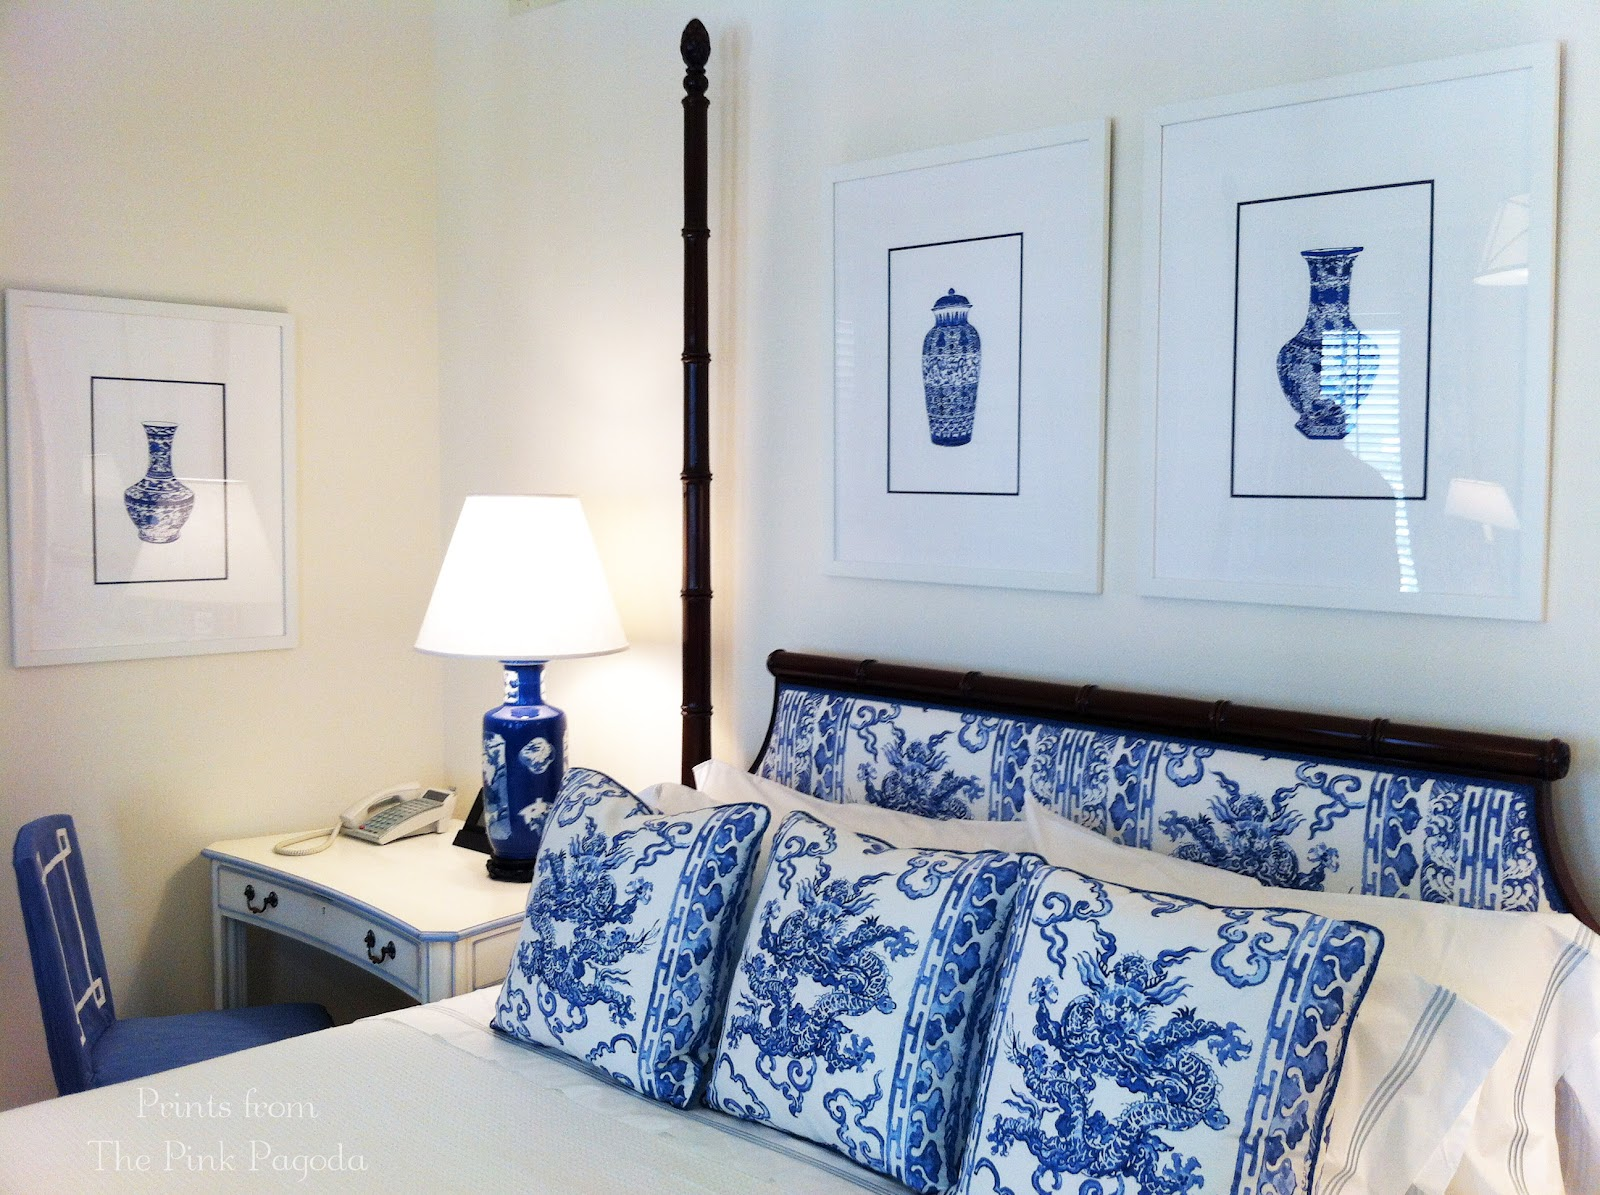 The pink pagoda blue and white monday jim thompson bedroom - Bedrooms in blue and white ...